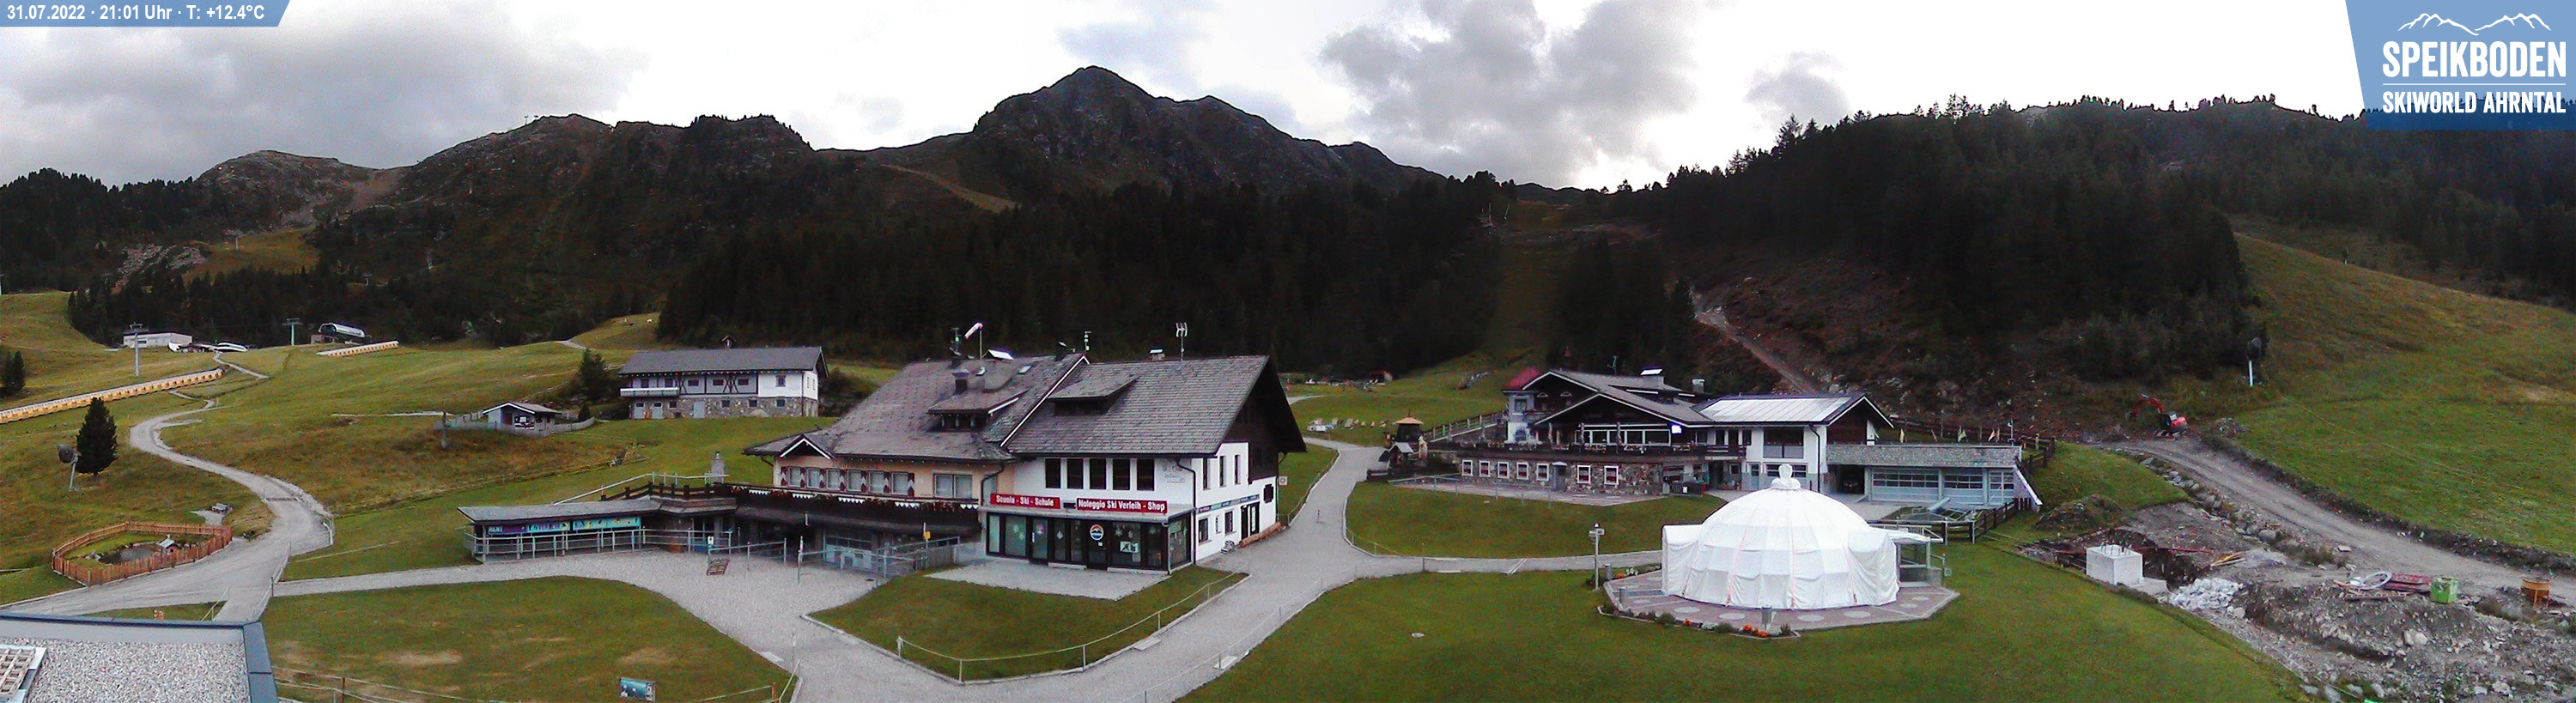 Webcam del Speikboden a Campo Tures